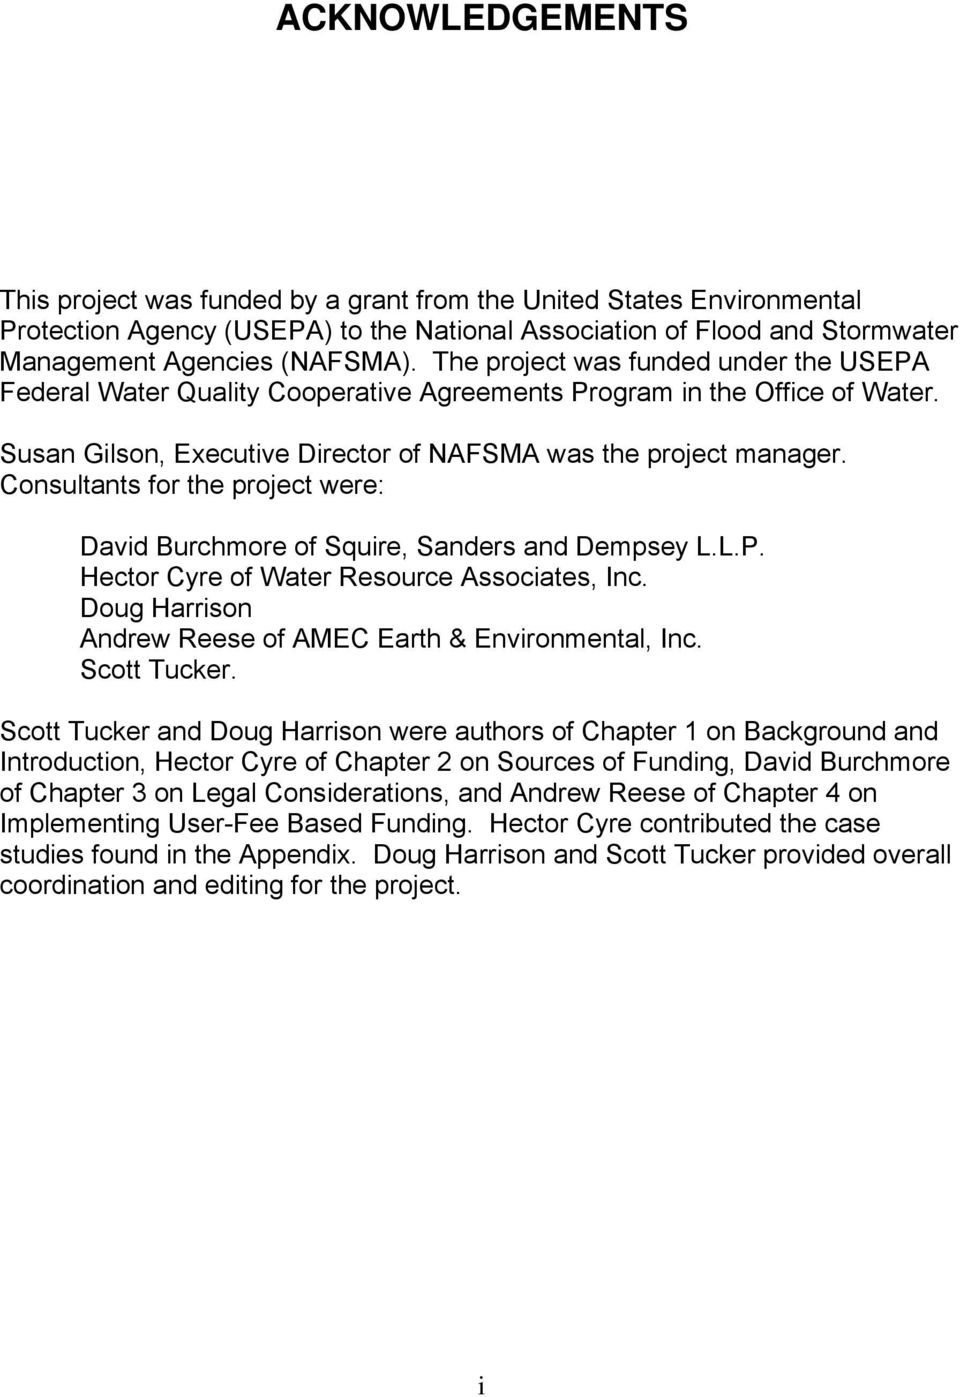 Consultants for the project were: David Burchmore of Squire, Sanders and Dempsey L.L.P. Hector Cyre of Water Resource Associates, Inc. Doug Harrison Andrew Reese of AMEC Earth & Environmental, Inc.